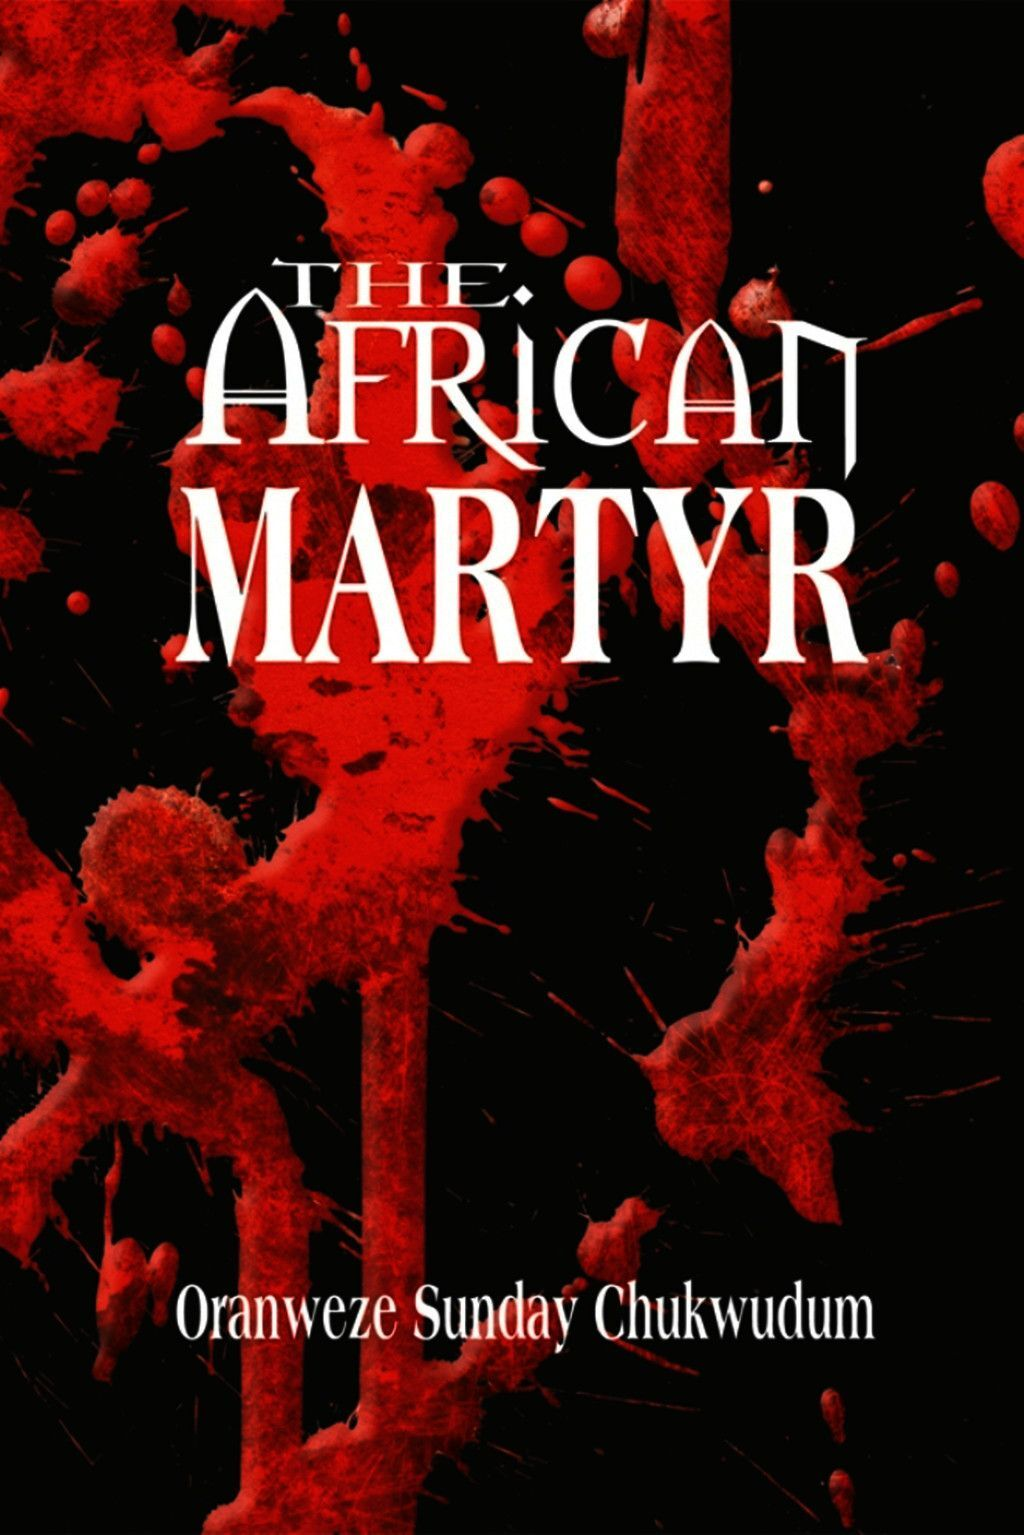 The African Martyr